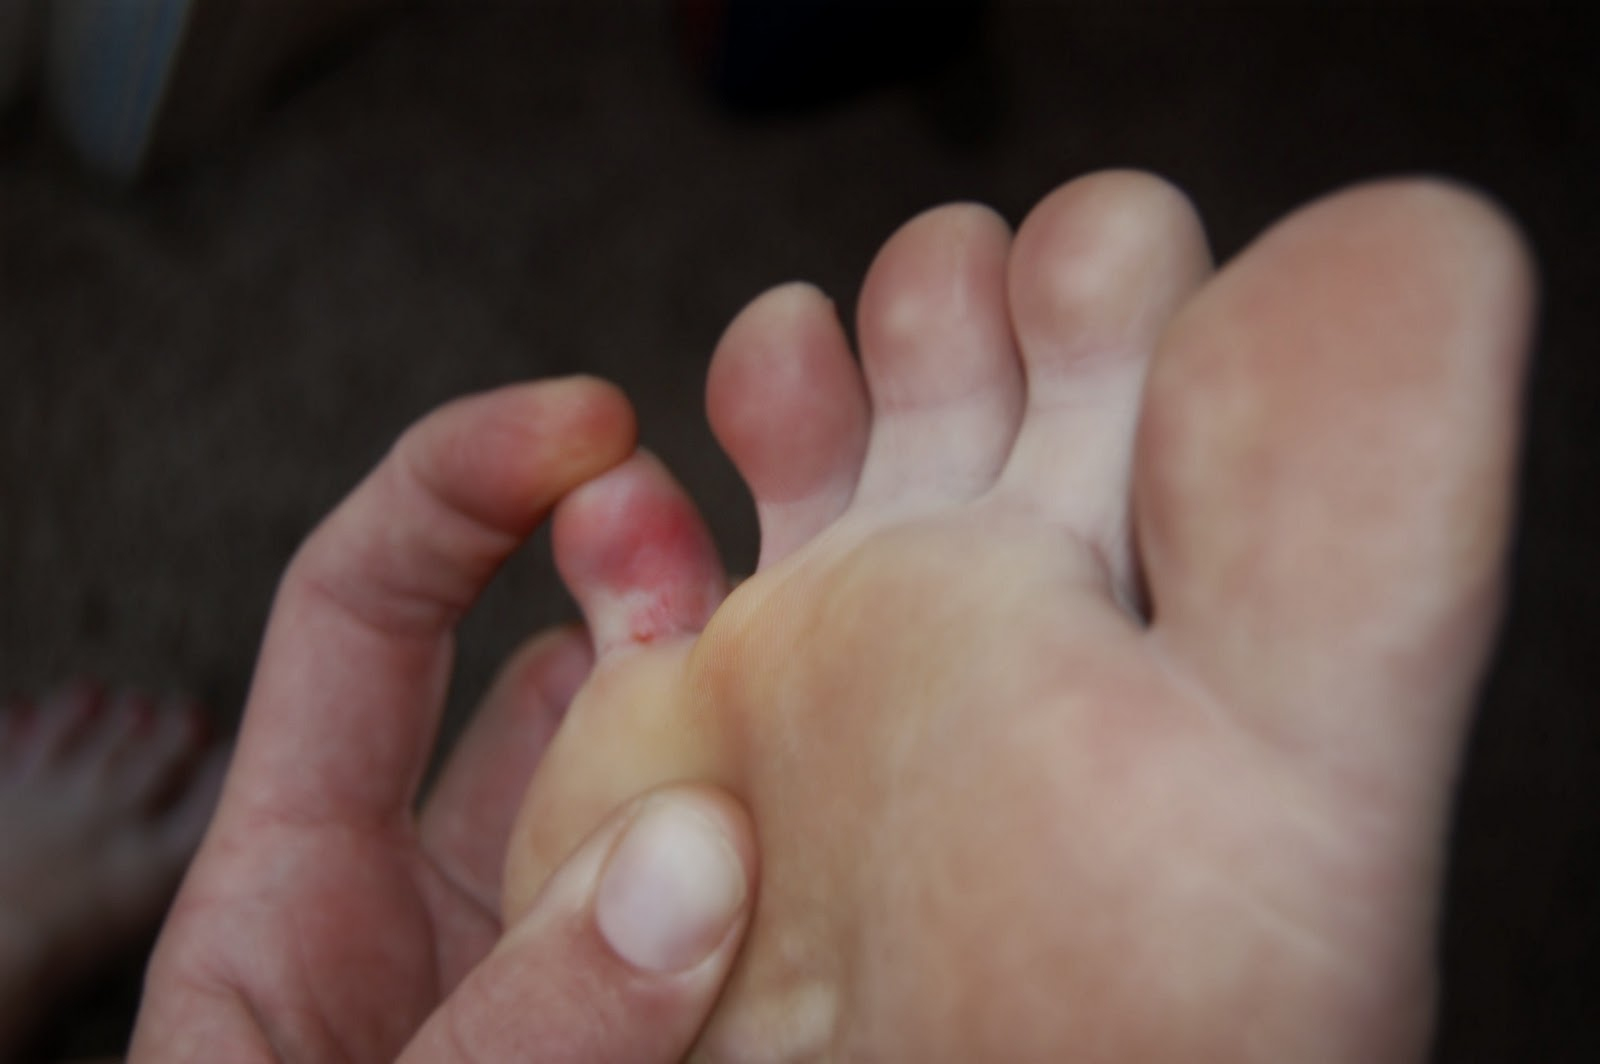 Sharp and Shooting Pain in the Little Toe